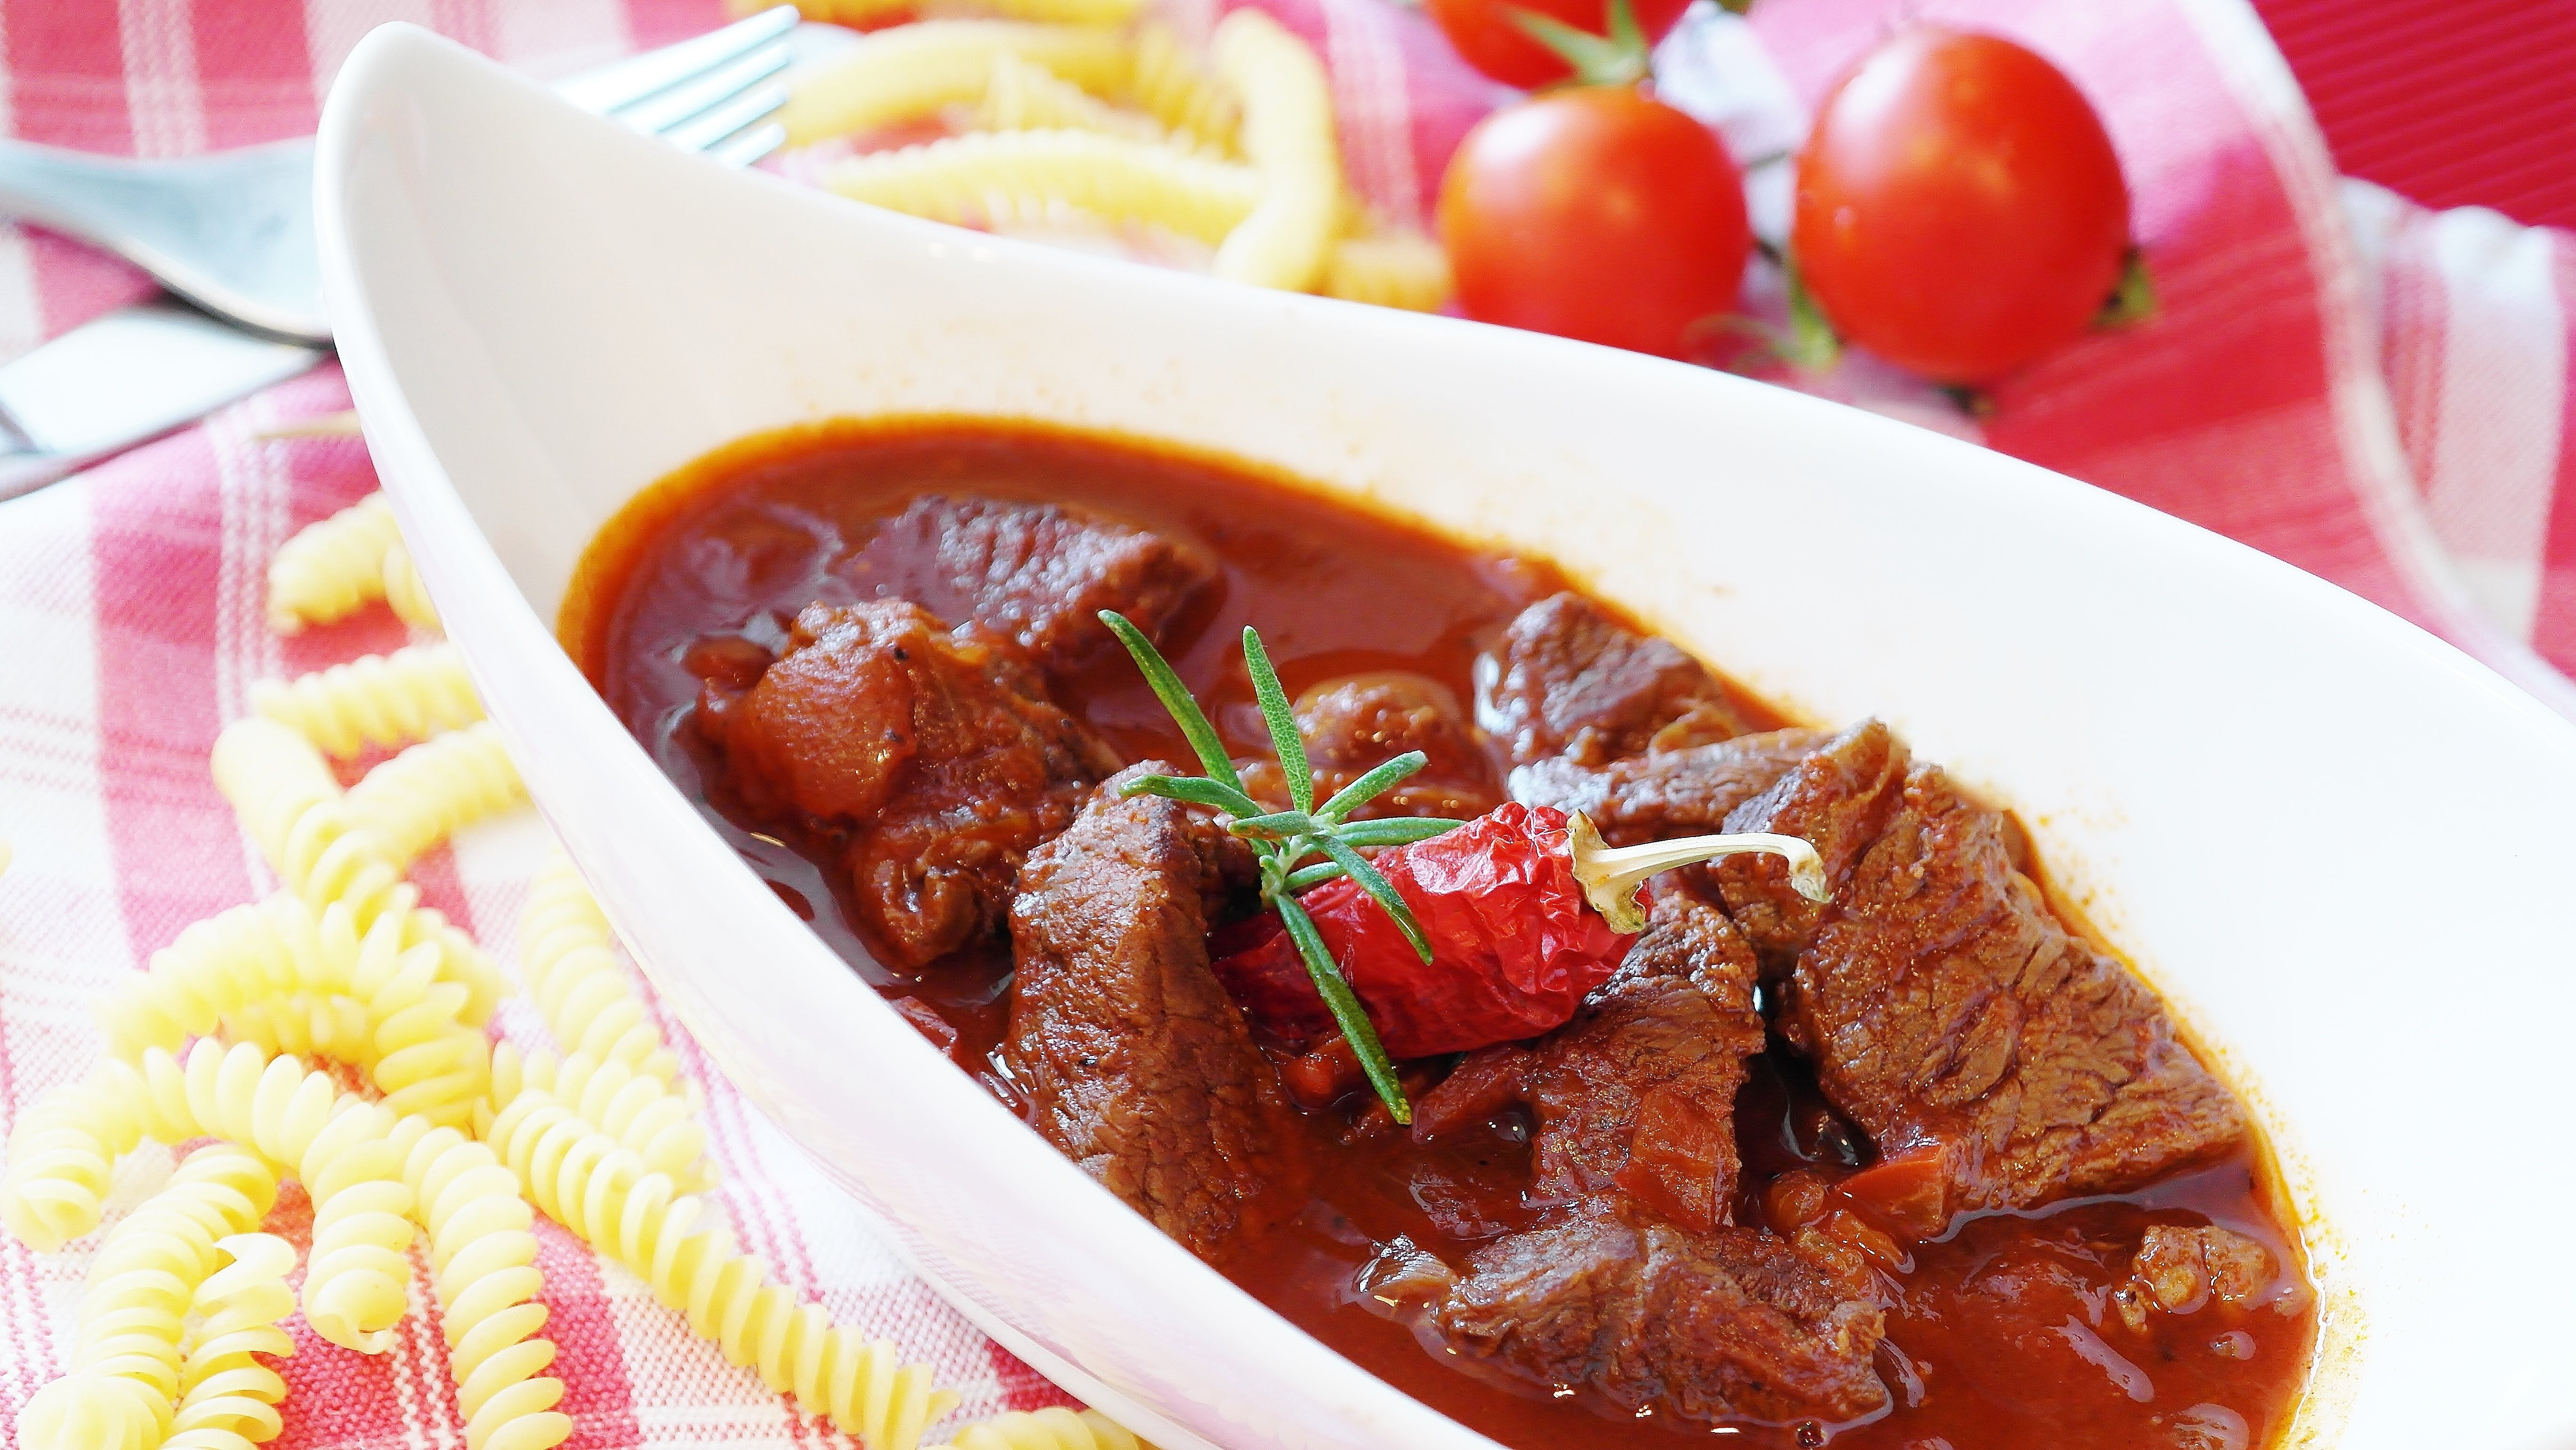 Cooked Beef With Sauce on Ceramic Bowl